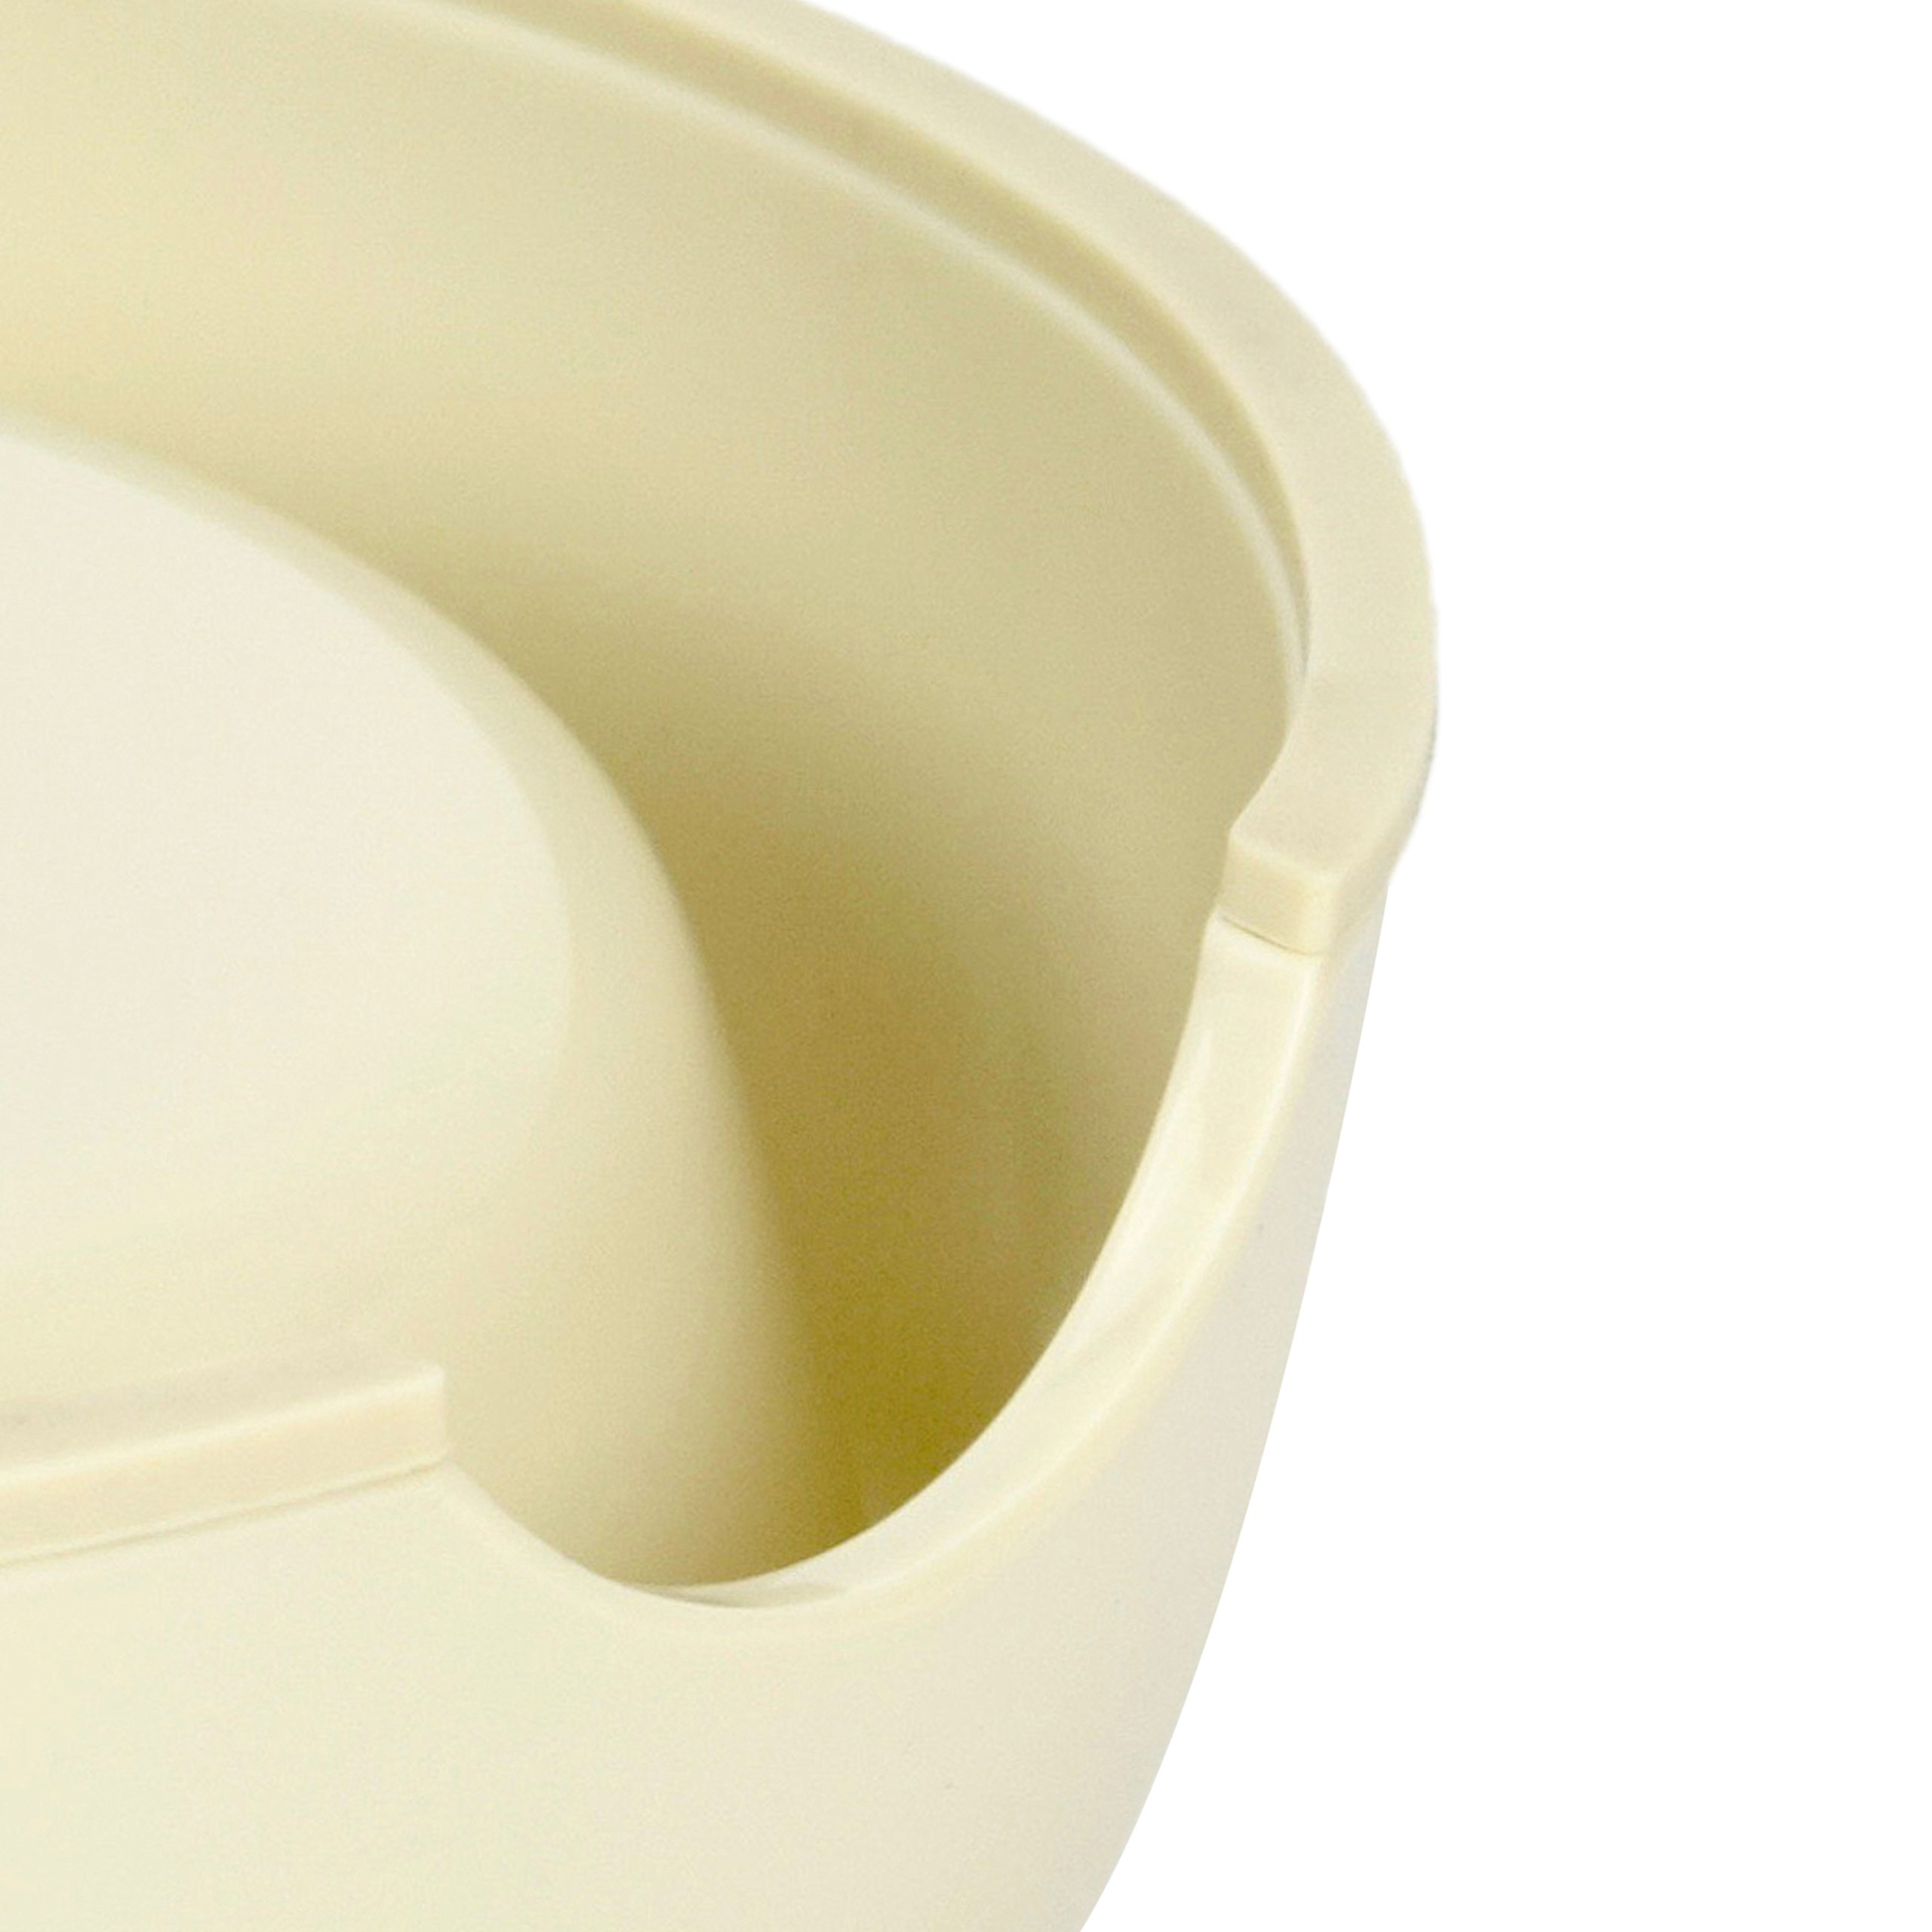 Martha Stewart Slow Feeder Pet Bowl, Ivory, 6 fl. oz.